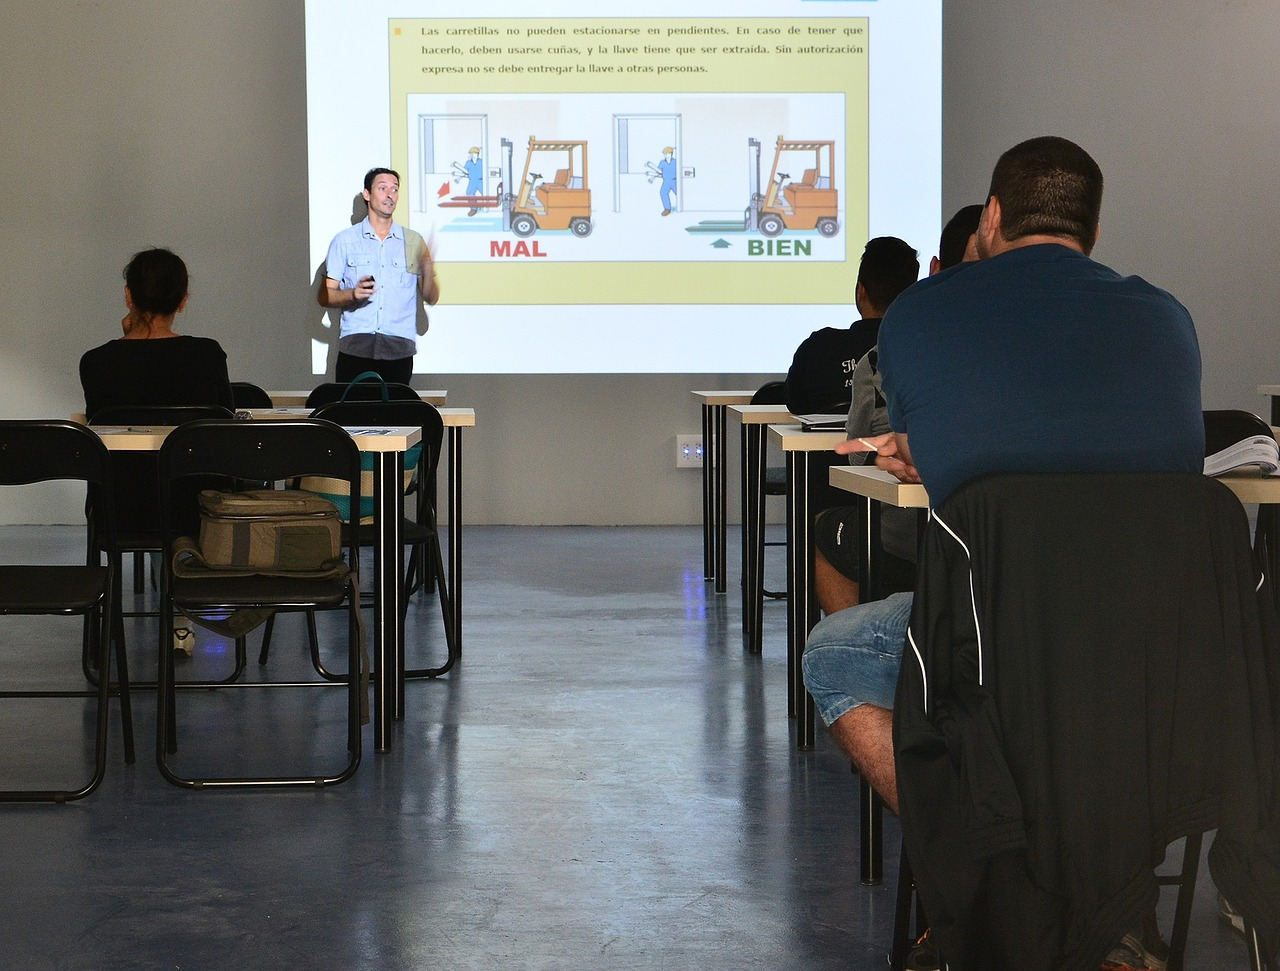 A group of employees listens to a man give a presentation